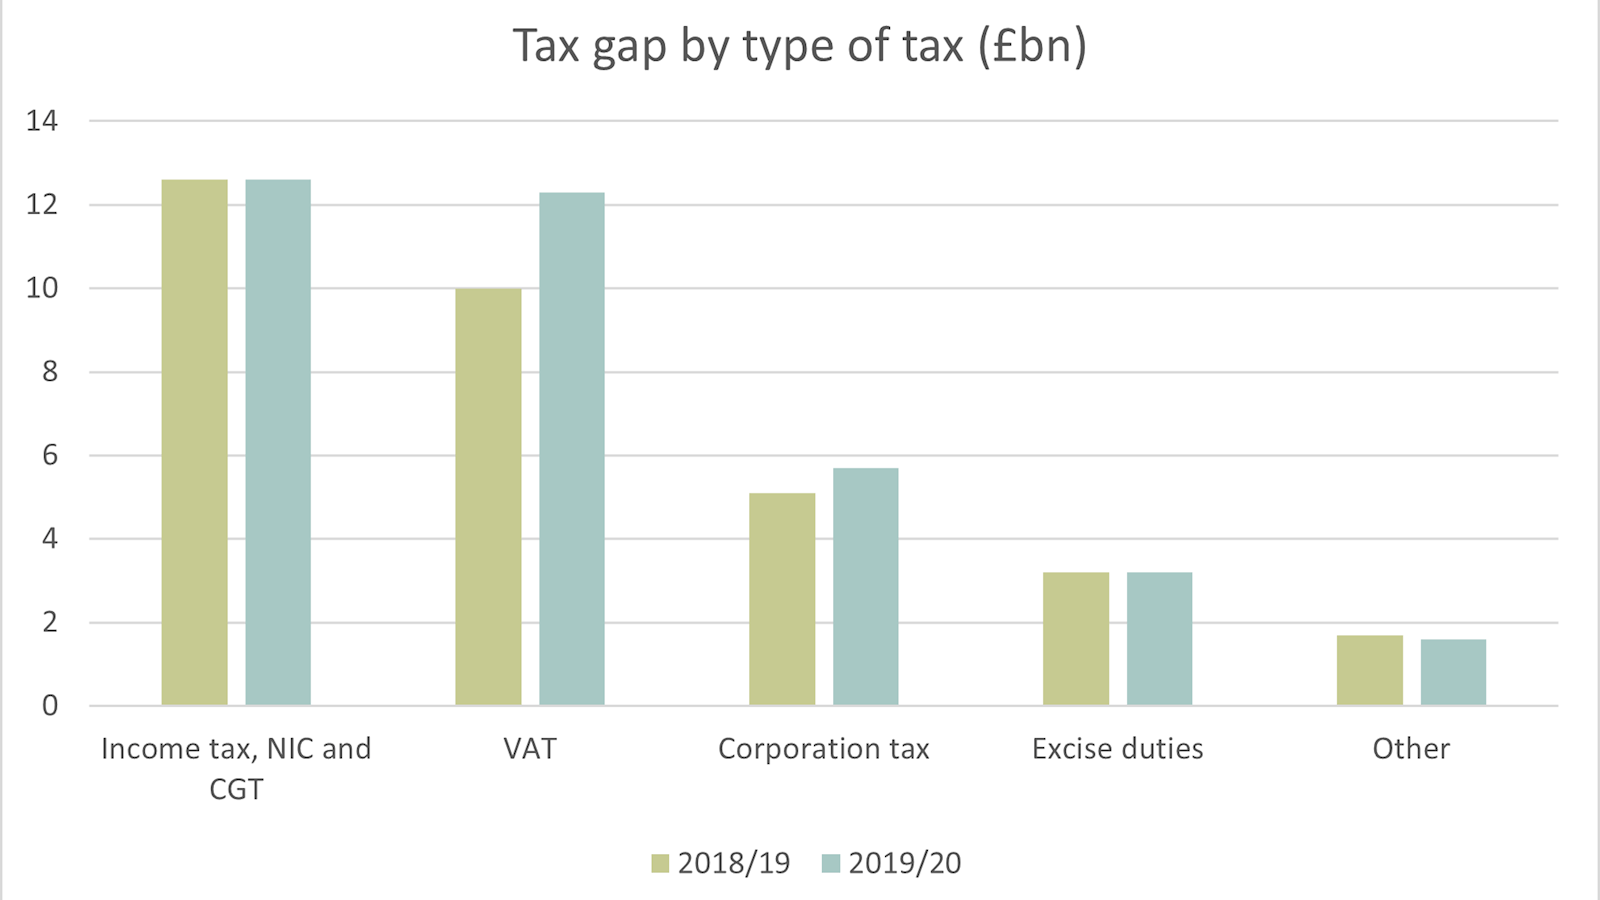 Table showing the tax gap for 2019/20 by type of tax according to HMRC data.